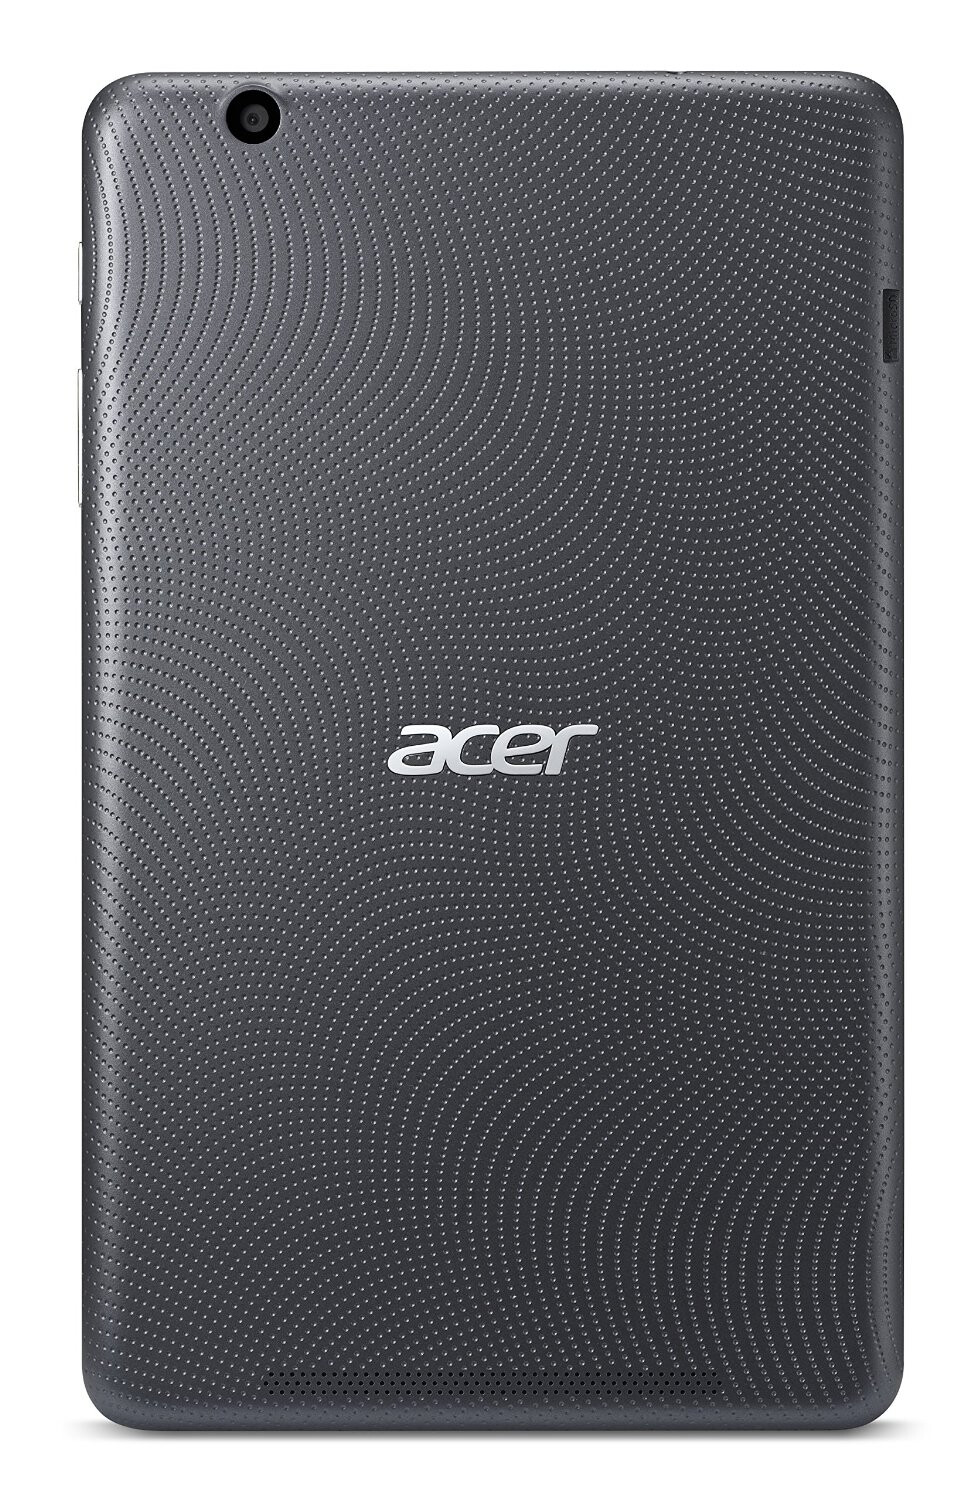 Deal: get the Acer Iconia One 8 for just $79.99 from Amazon